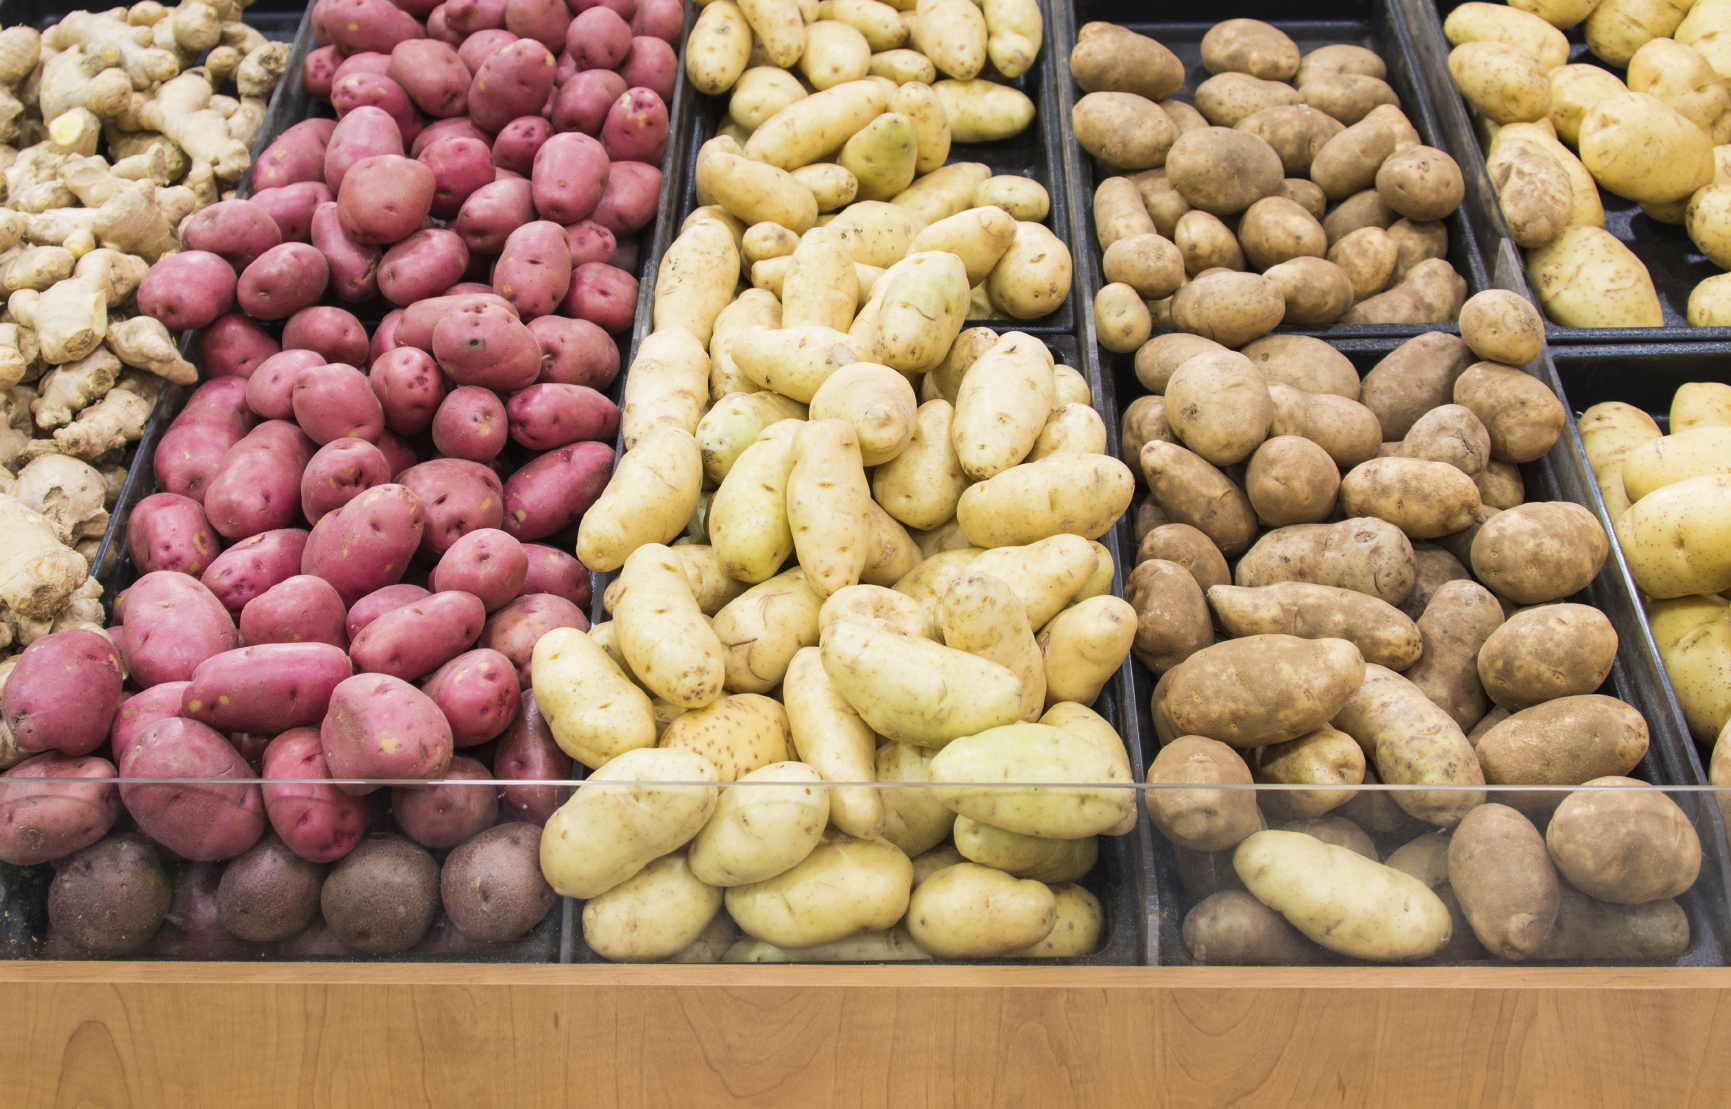 Different colors potatoes in a grocery store